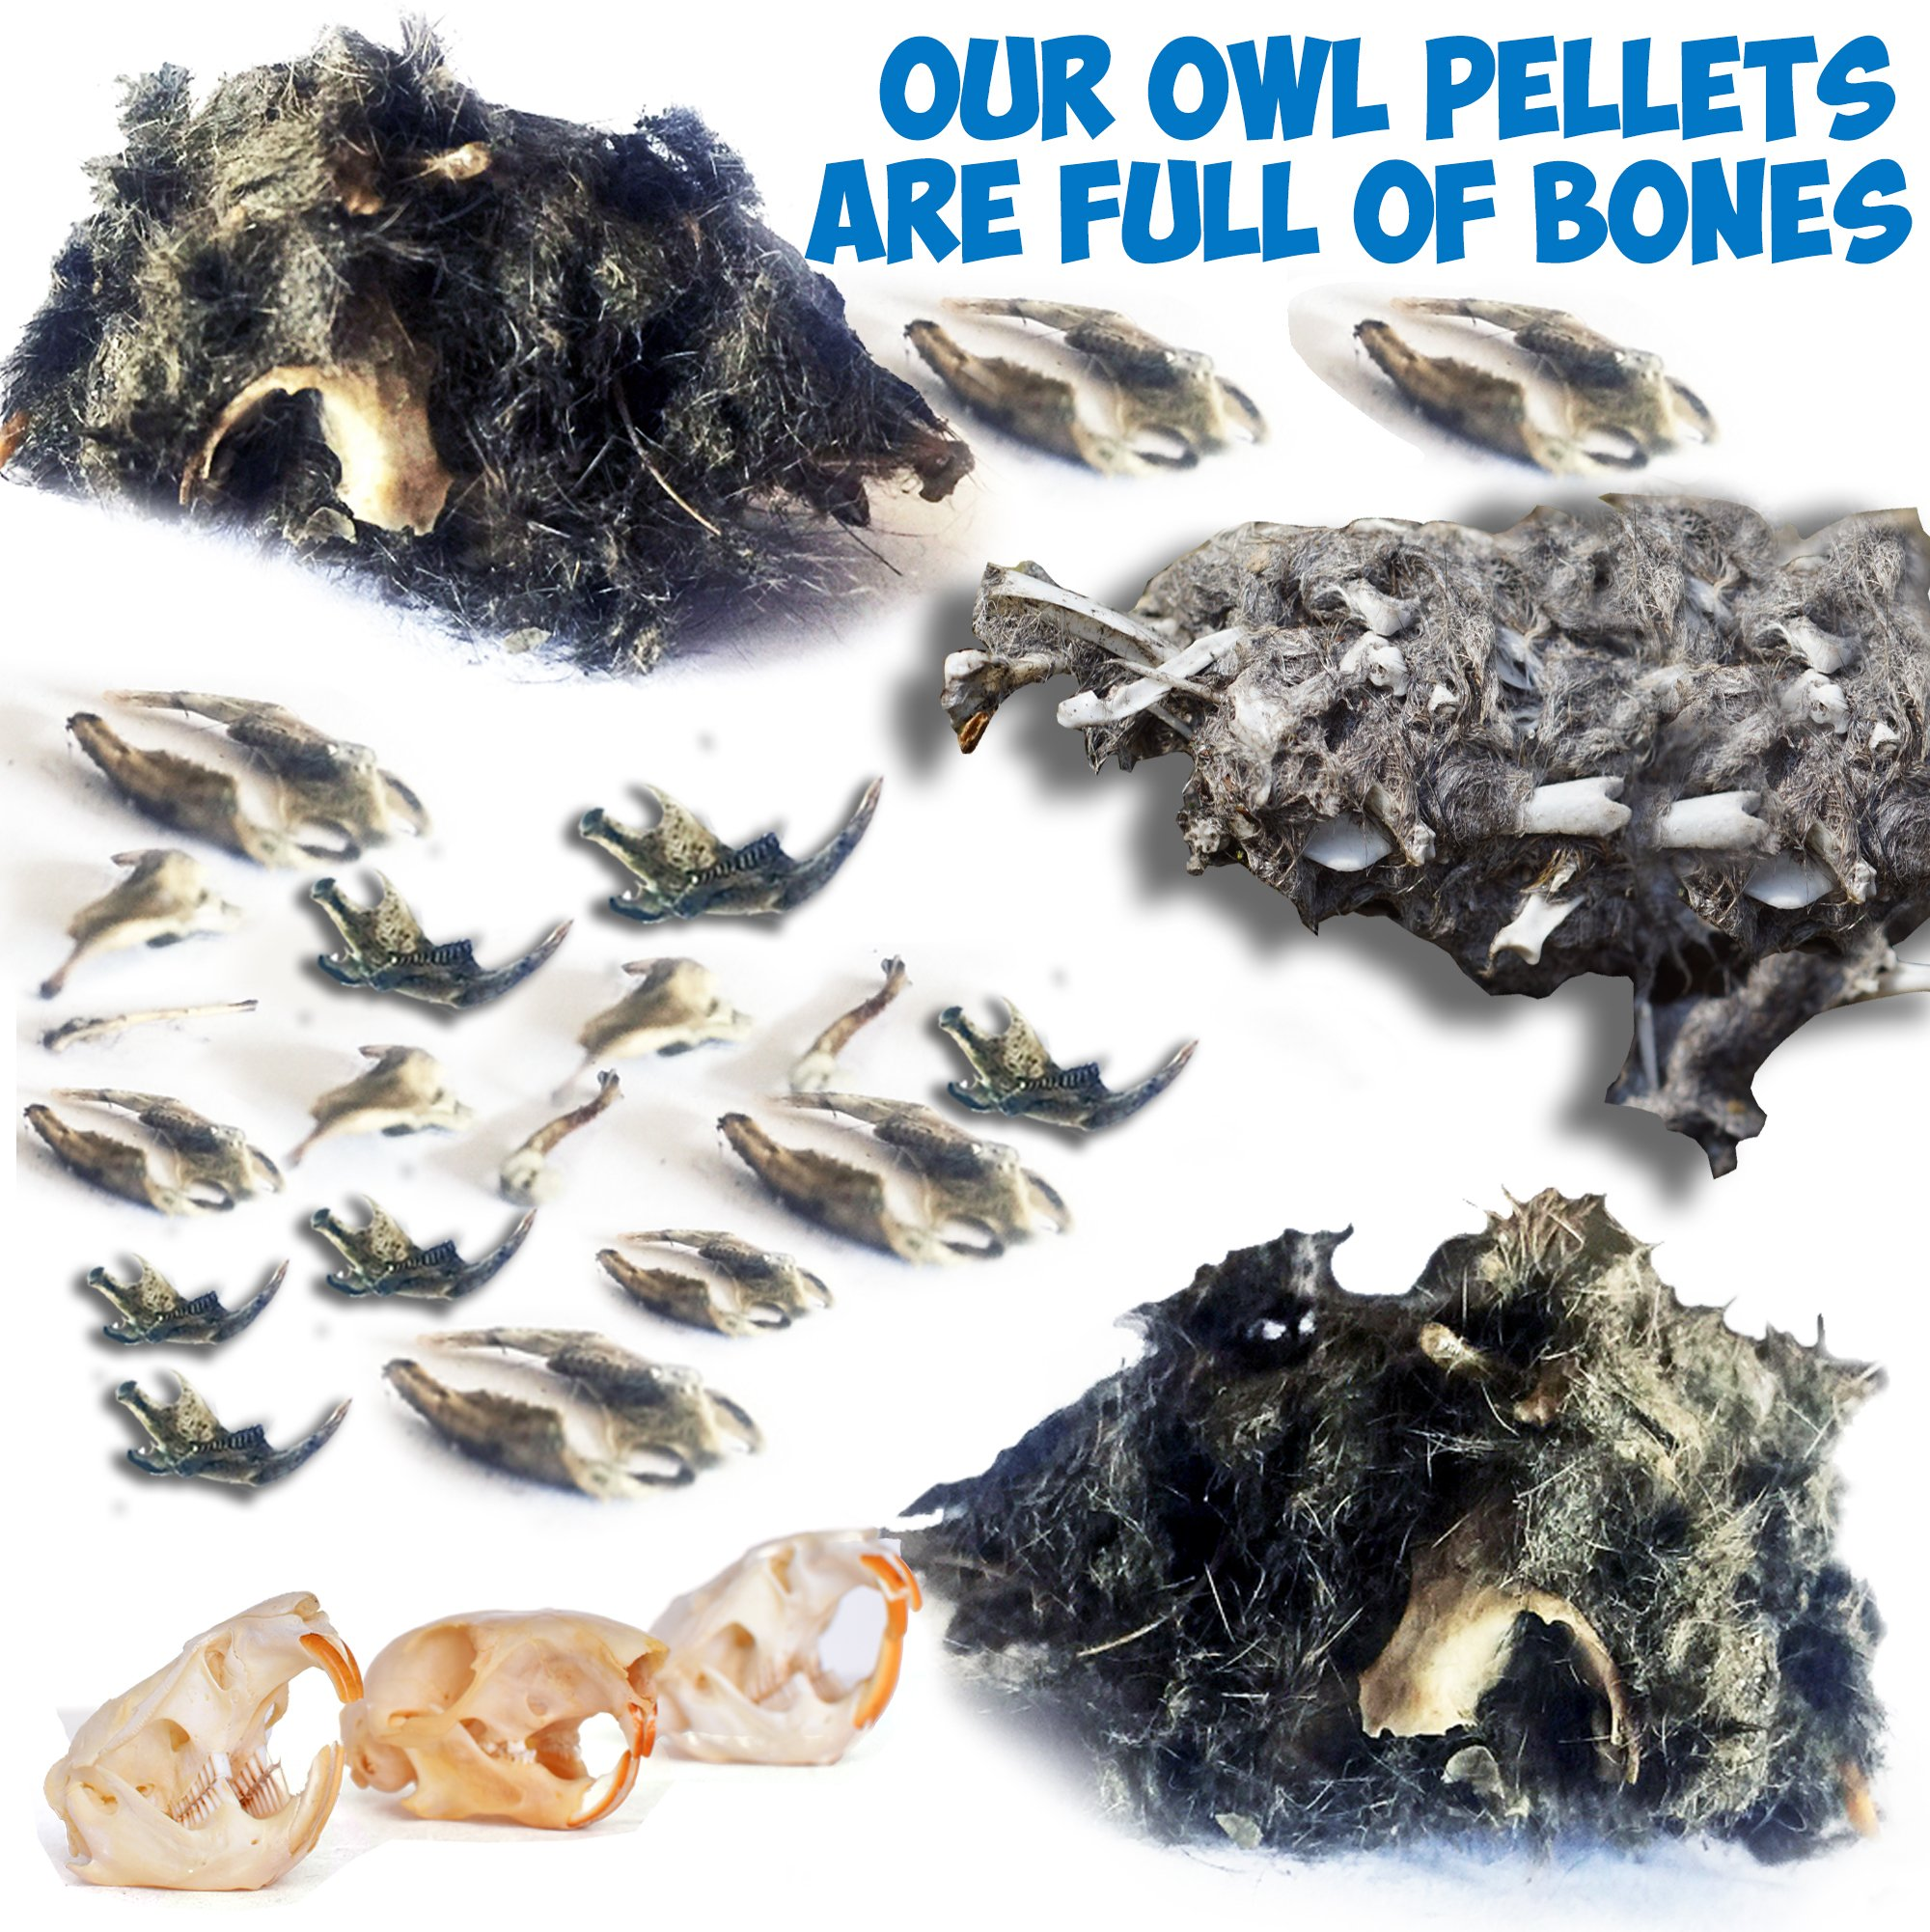 Amazing Owl Pellet Dissection Kit – 6-Piece Owl Pellet Set for Science Lab Projects – w/Tweezers, Magnifying Glass and Wooden Probes – Ideal for Kids, Class Projects – Bonus Barn Owl eBook by Evviva Sciences (Image #1)